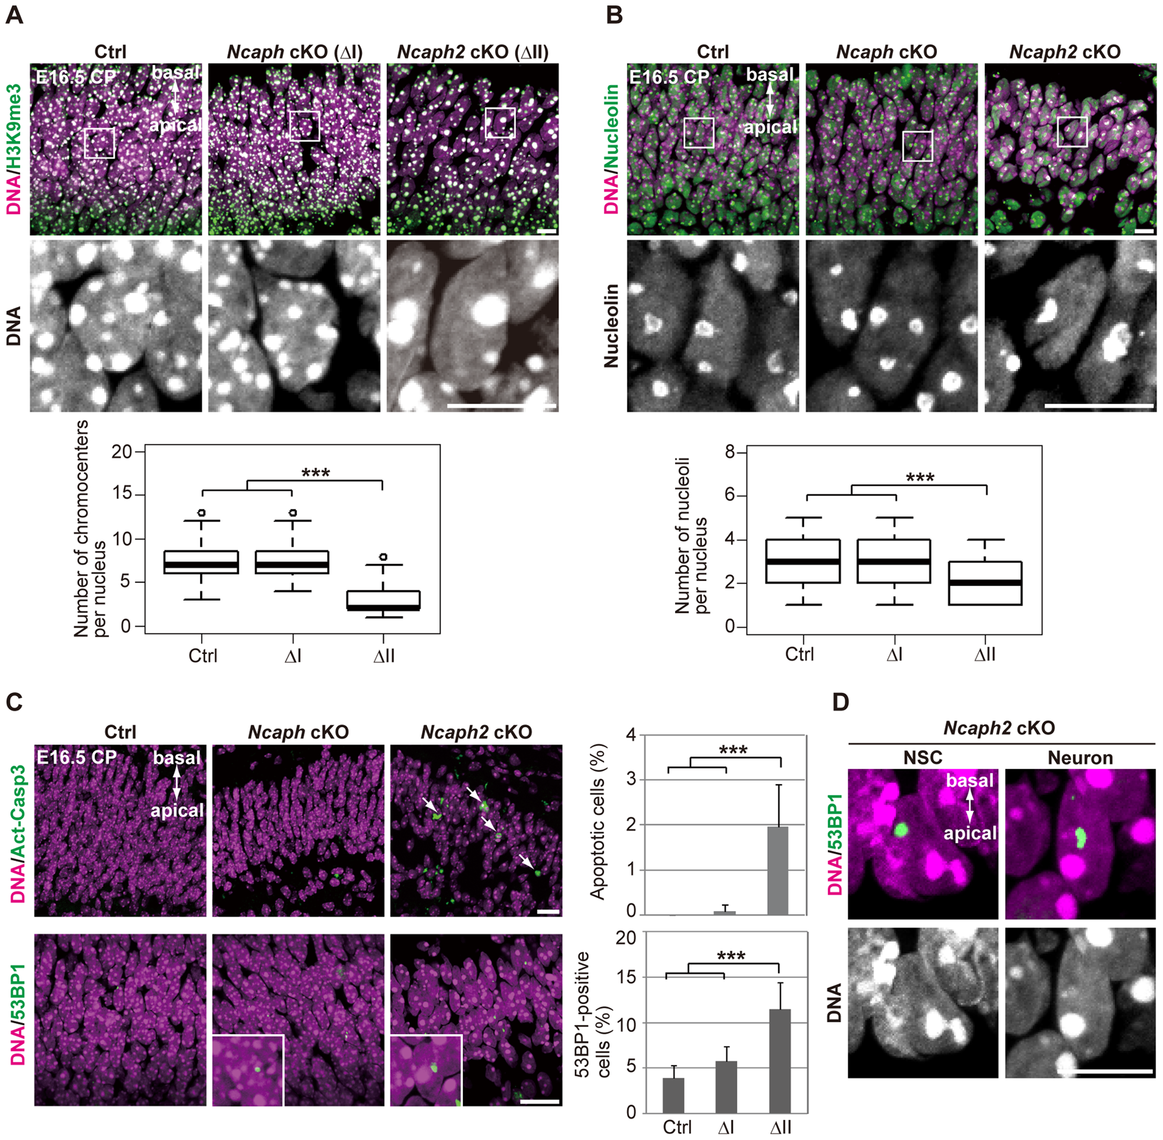 Depletion of condensin II affects nuclear architecture and cell survival in postmitotic neurons.